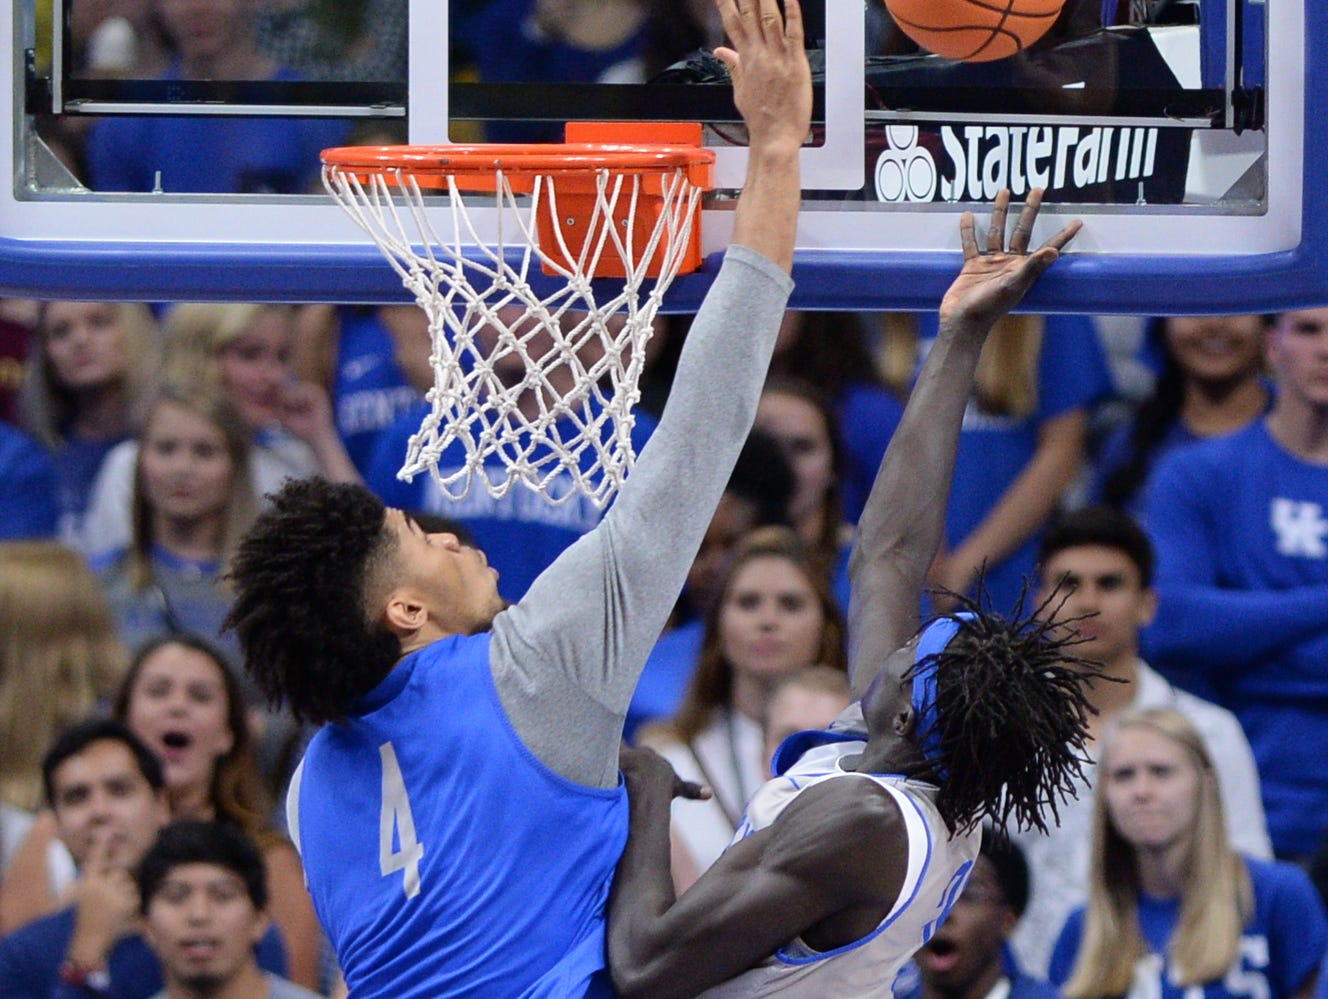 UK forward Nick Richards blocks the ball during the University of Kentucky mens basketball Blue-White scrimmage in Lexington, Kentucky, on Friday, Oct. 20, 2017.